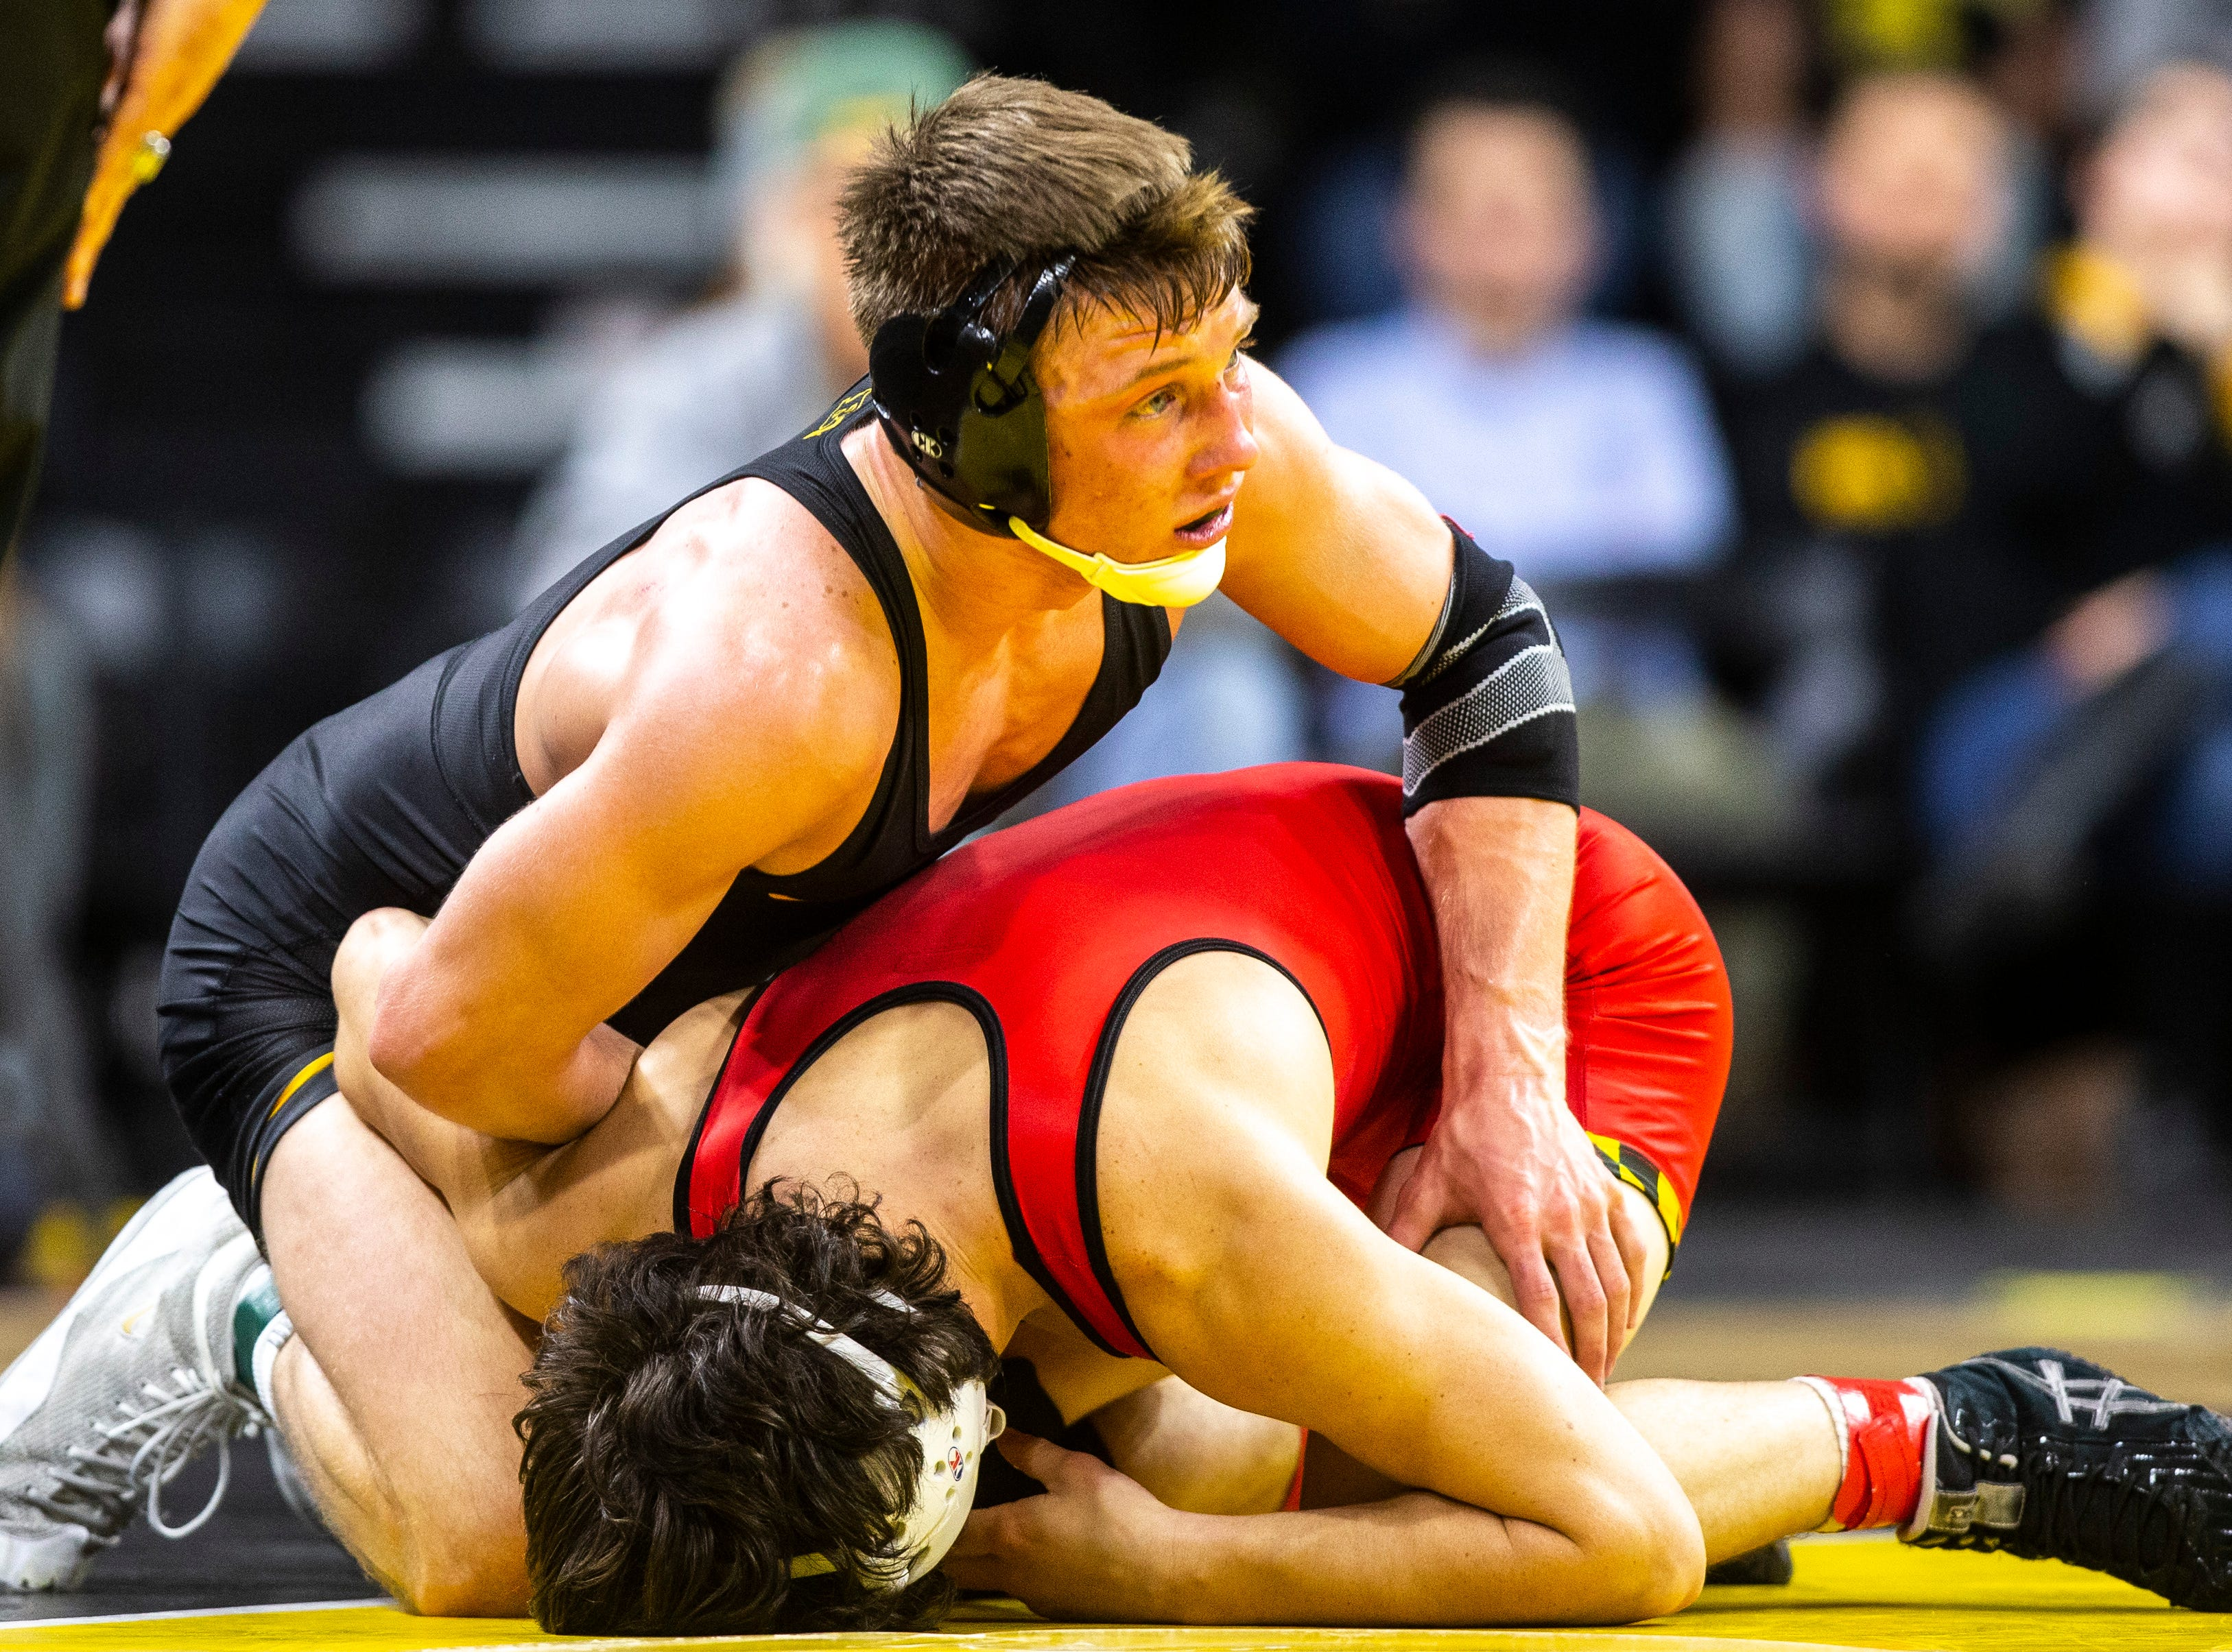 Iowa's Max Murin, top, wrestles Maryland's Danny Bertoni at 141 during a NCAA Big Ten Conference wrestling dual on Friday, Feb. 8, 2019 at Carver-Hawkeye Arena in Iowa City, Iowa.